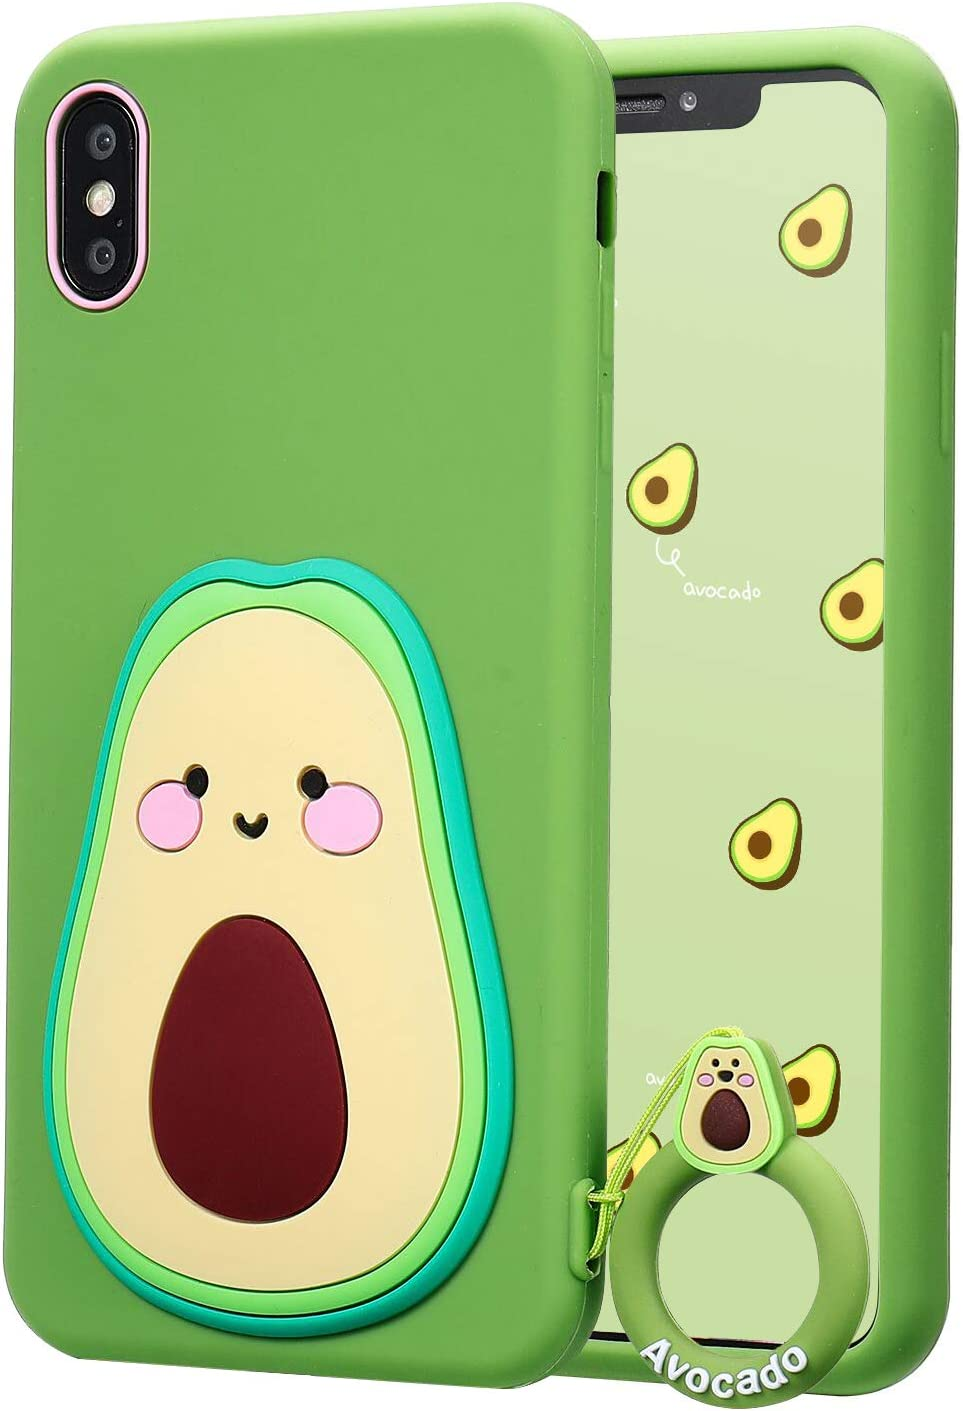 Coralogo for iPhone X/XS Case,3D Cute Cartoon Funny Food Fruit, Soft Silicone Character Designer Shockproof Kawaii Fashion Fun Cool Cover Cases for Girls Boys Teens Kids iPhone X/XS 5.8